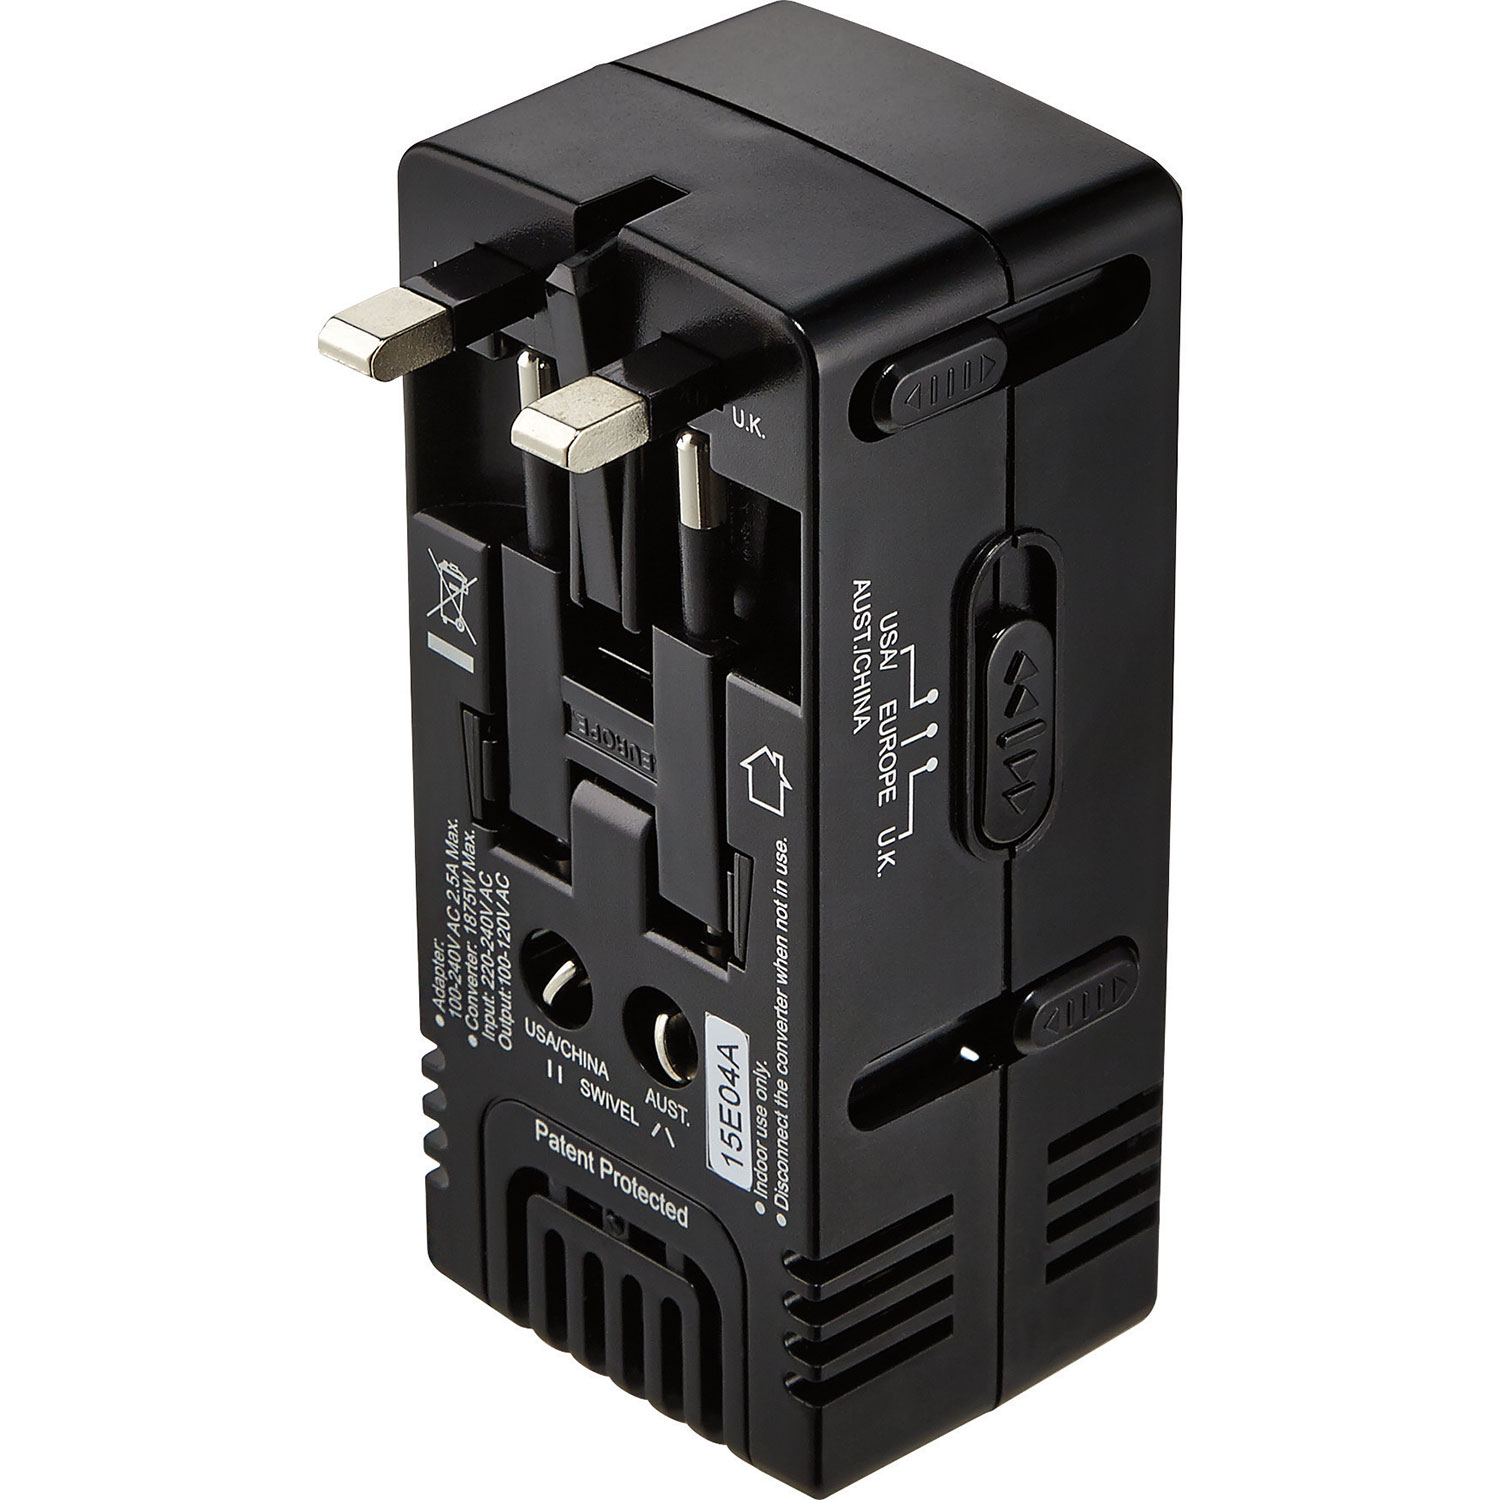 Insignia All In One Travel Adapter Converter Ns Mta1875 C To Legally Canada Add 240v Power Outlet From Stove Adapters Best Buy